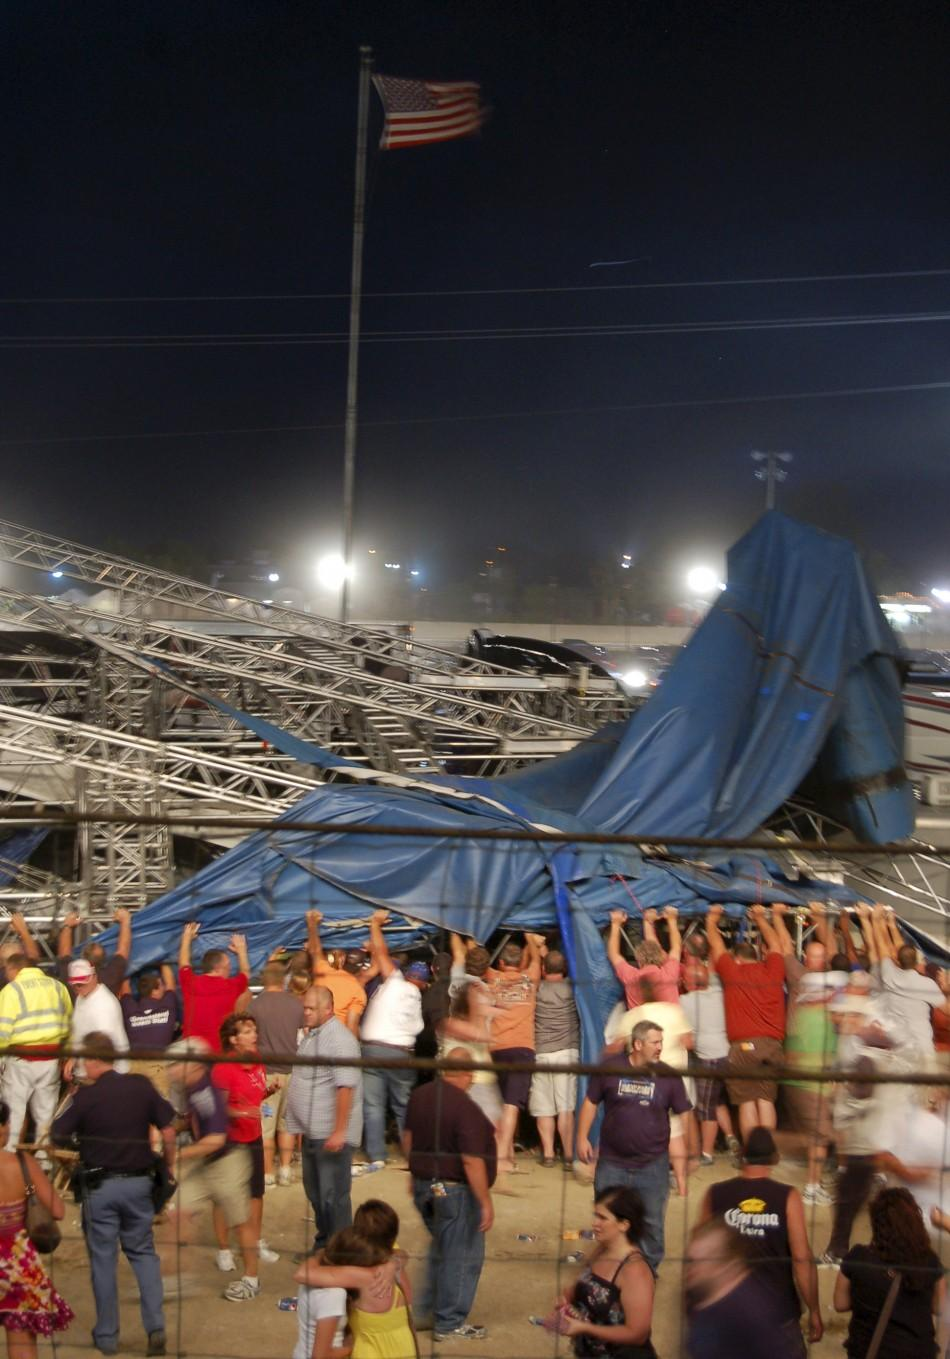 Concertgoers and emergency personnel hold up stage rigging after it collapsed at the Indiana State Fairgrounds in Indianapolis